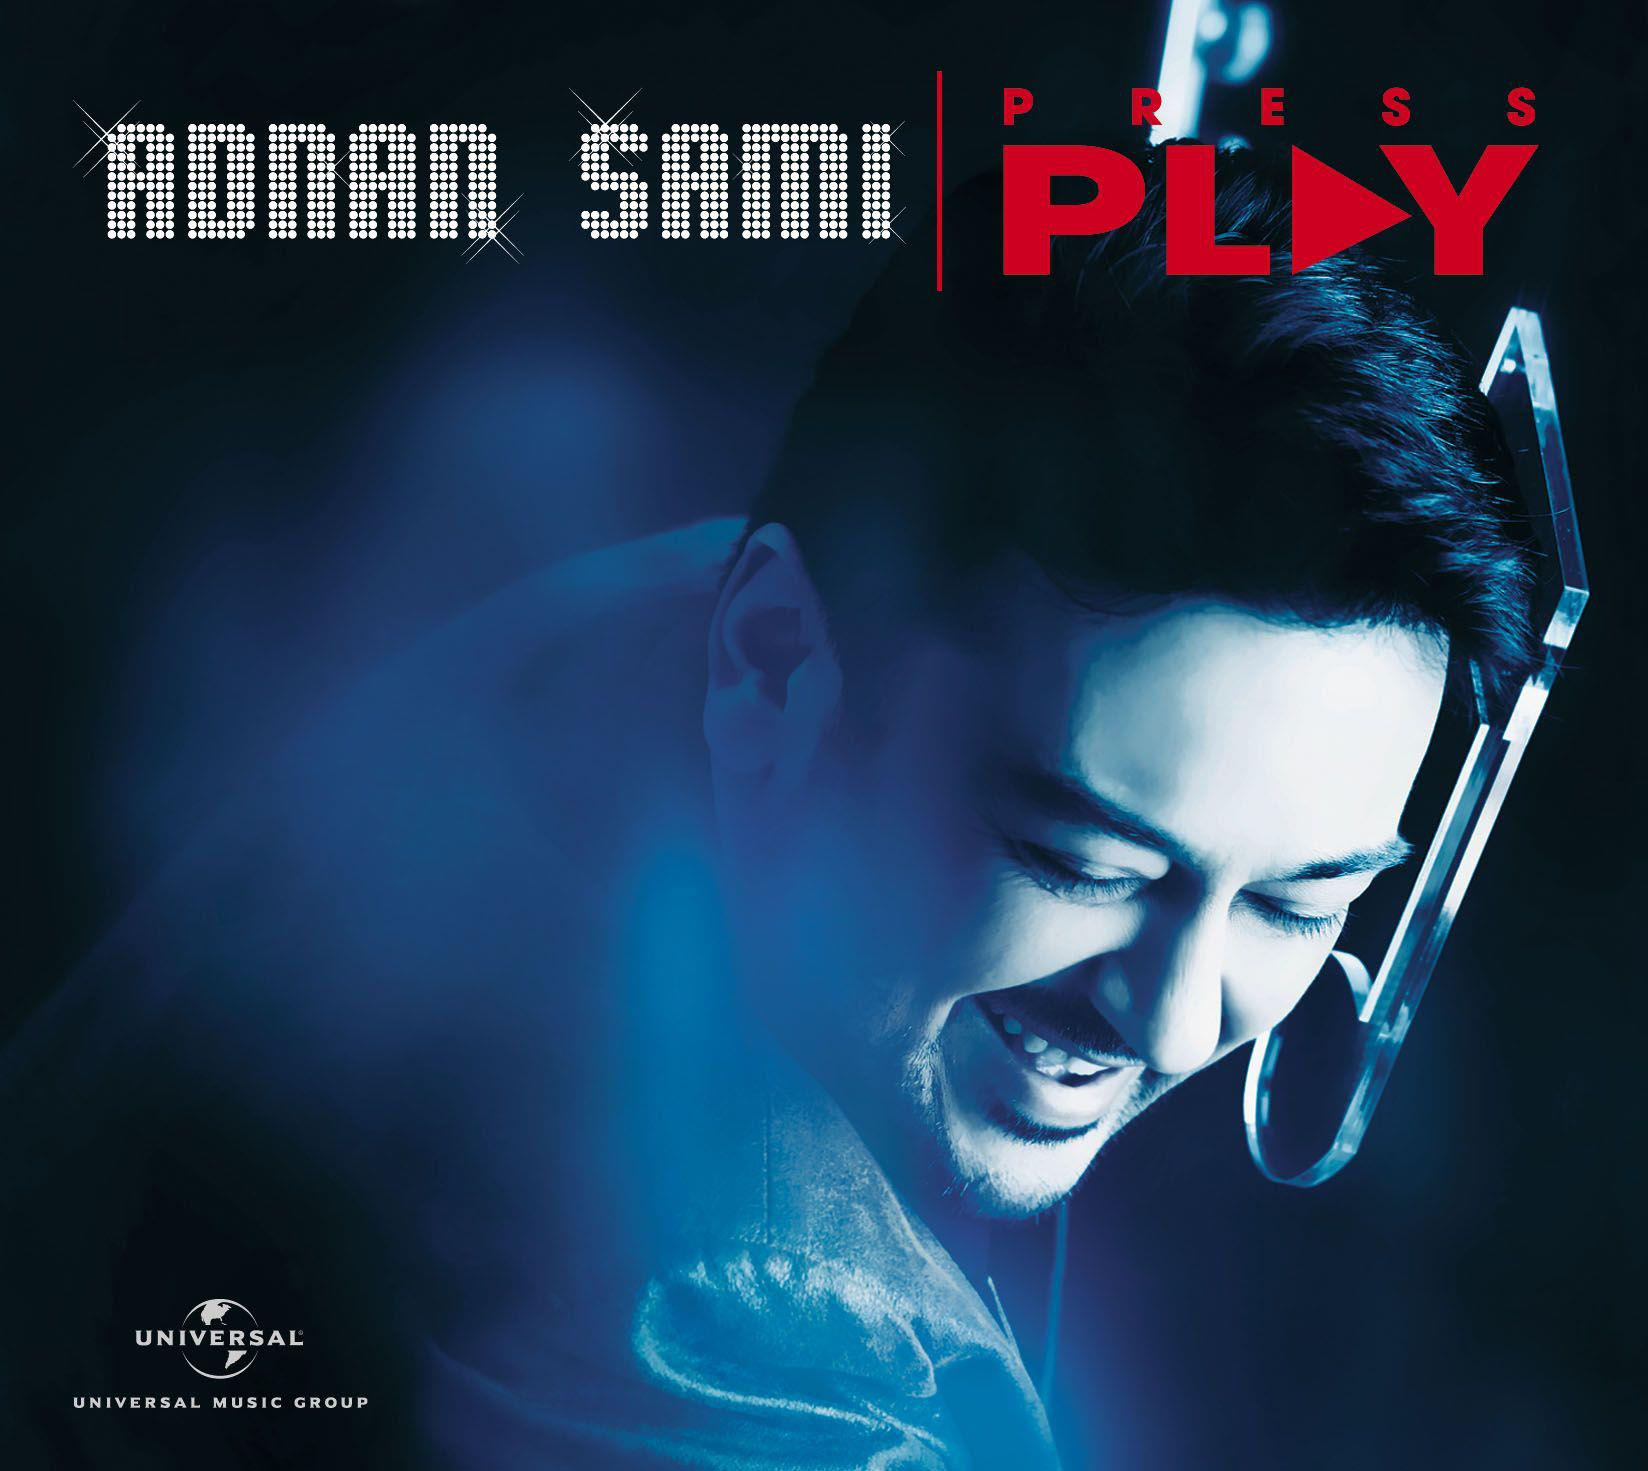 Adnan Sami Press Play album cover 2013